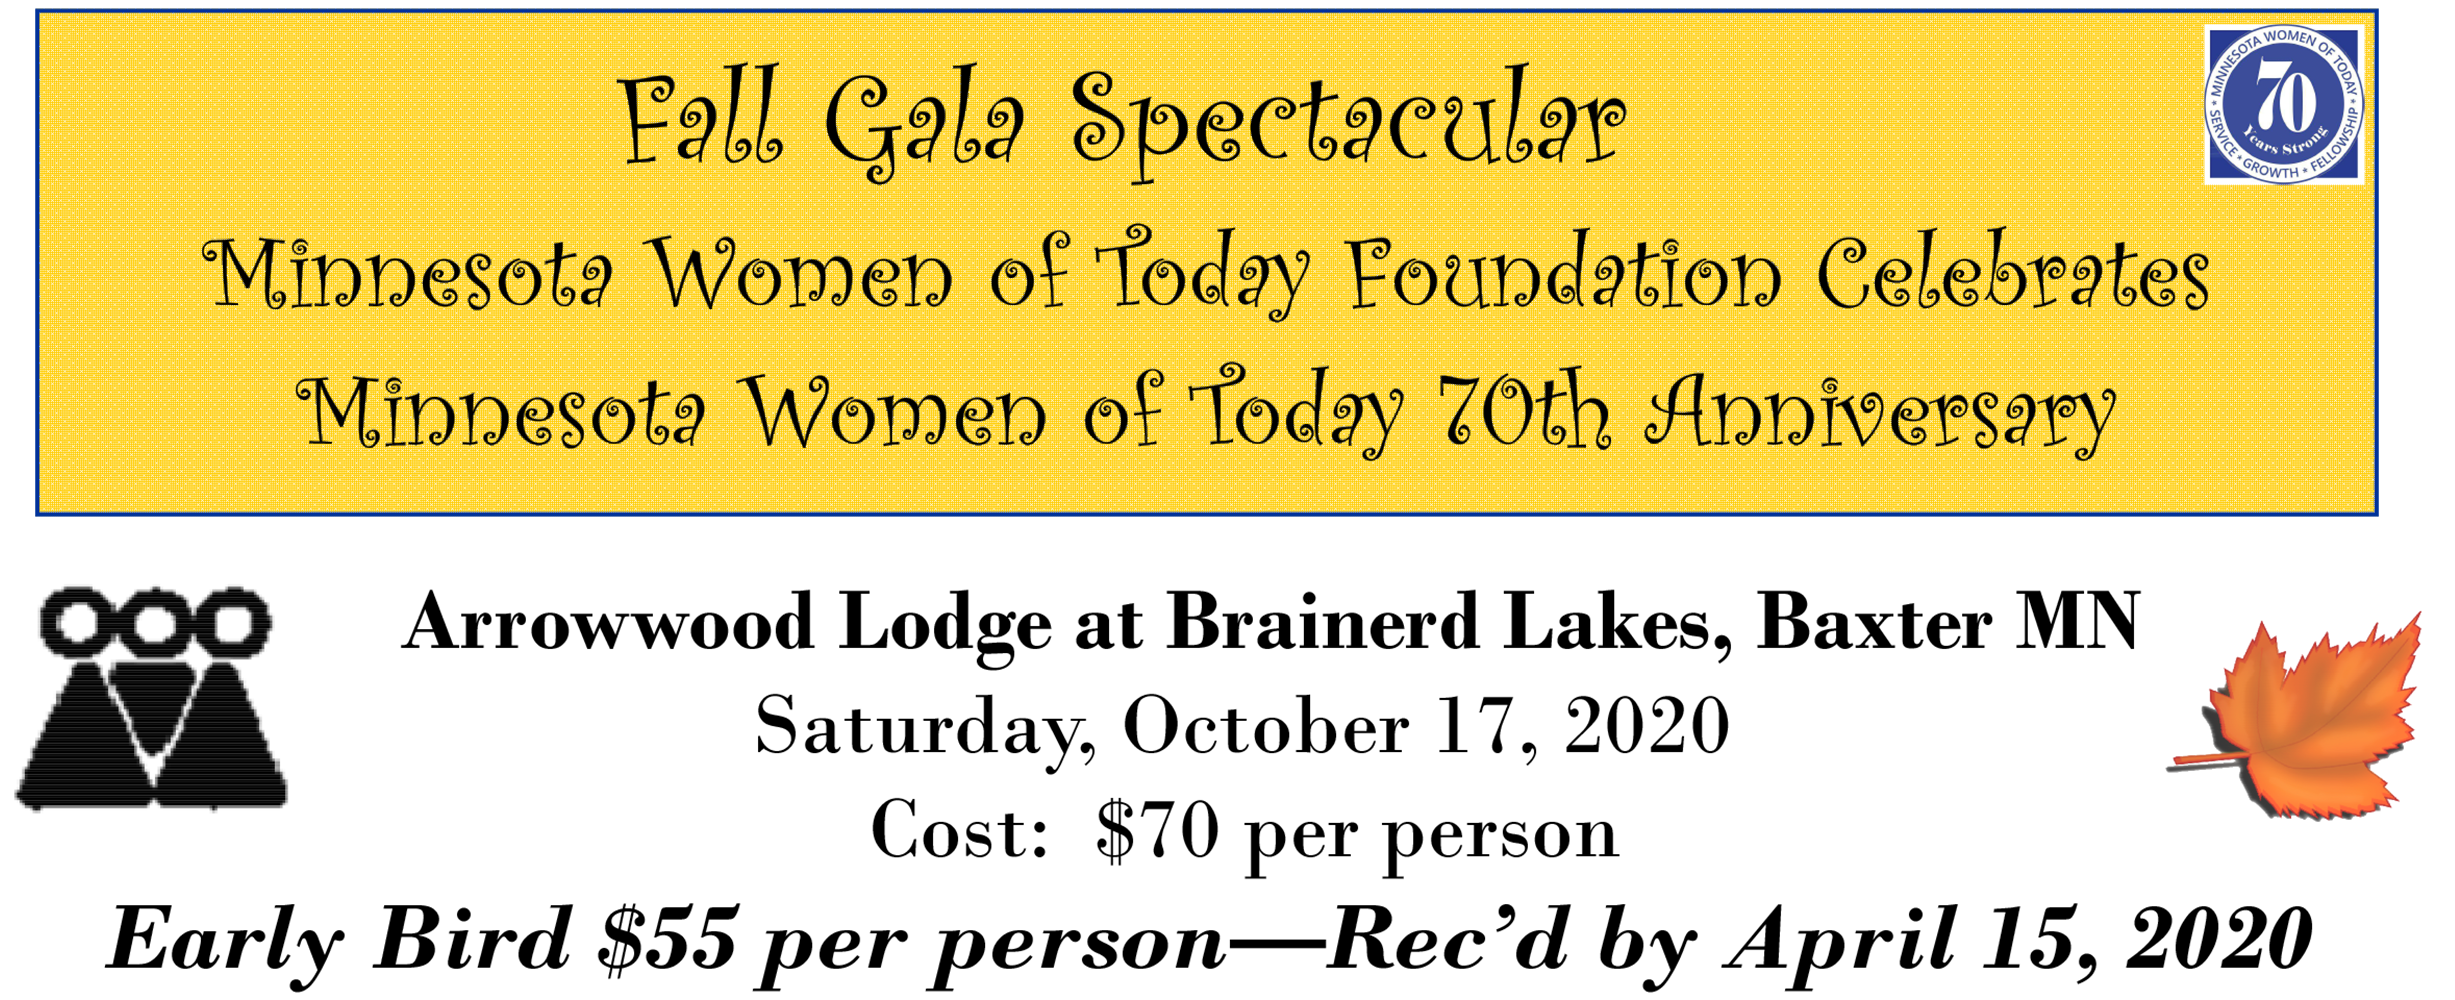 2020 MNWT Foundation Fall Gala Spectacular